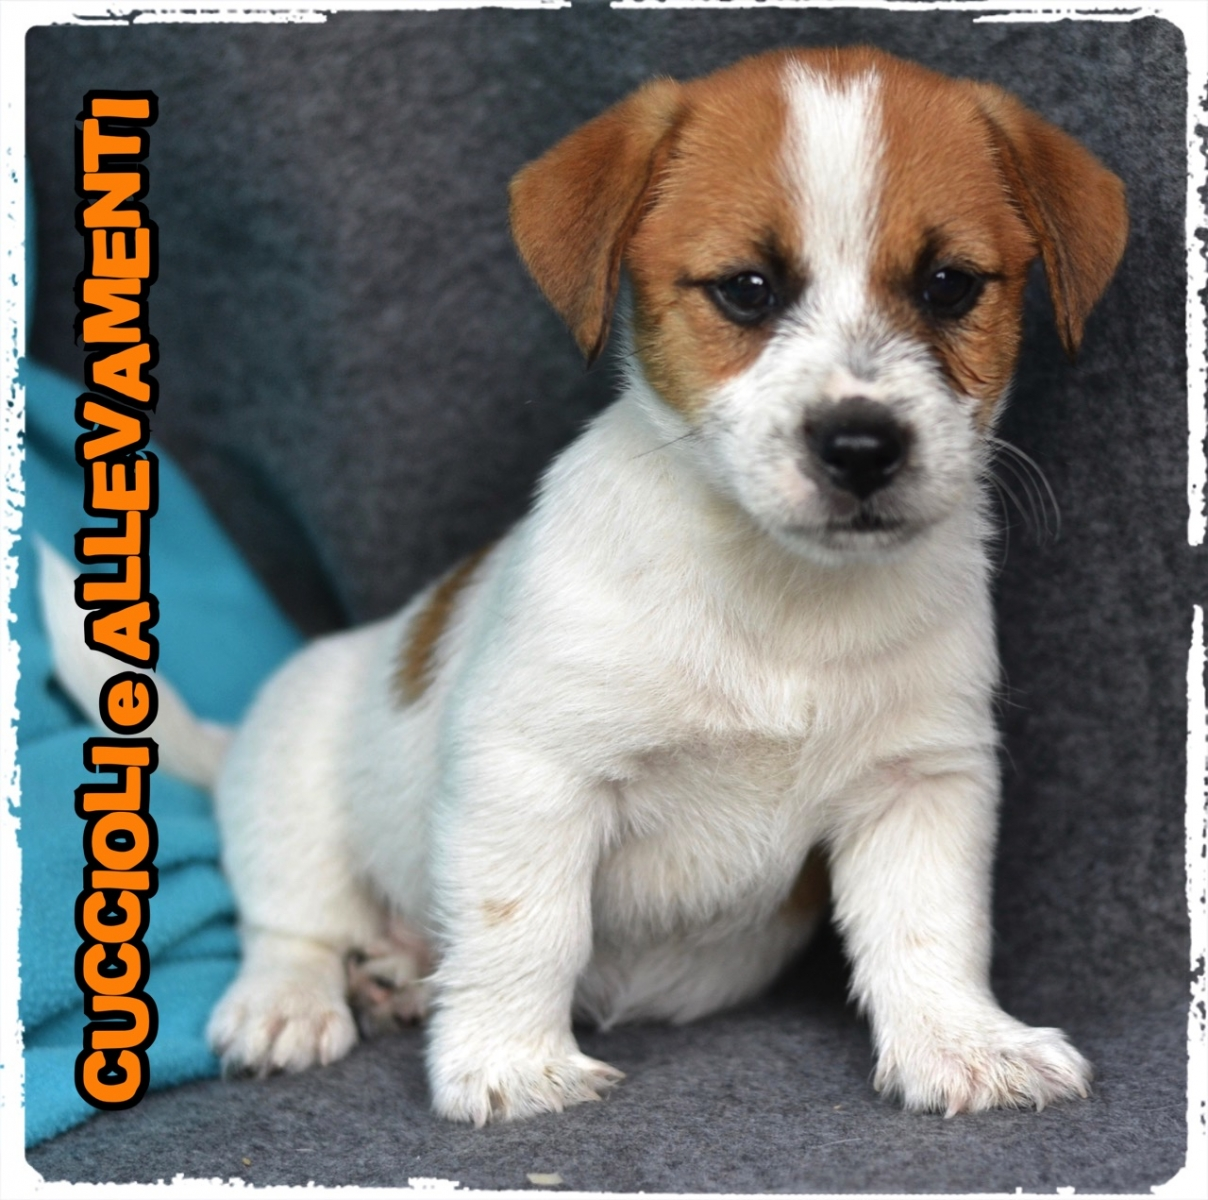 Jack Russell/Russel 30_wm